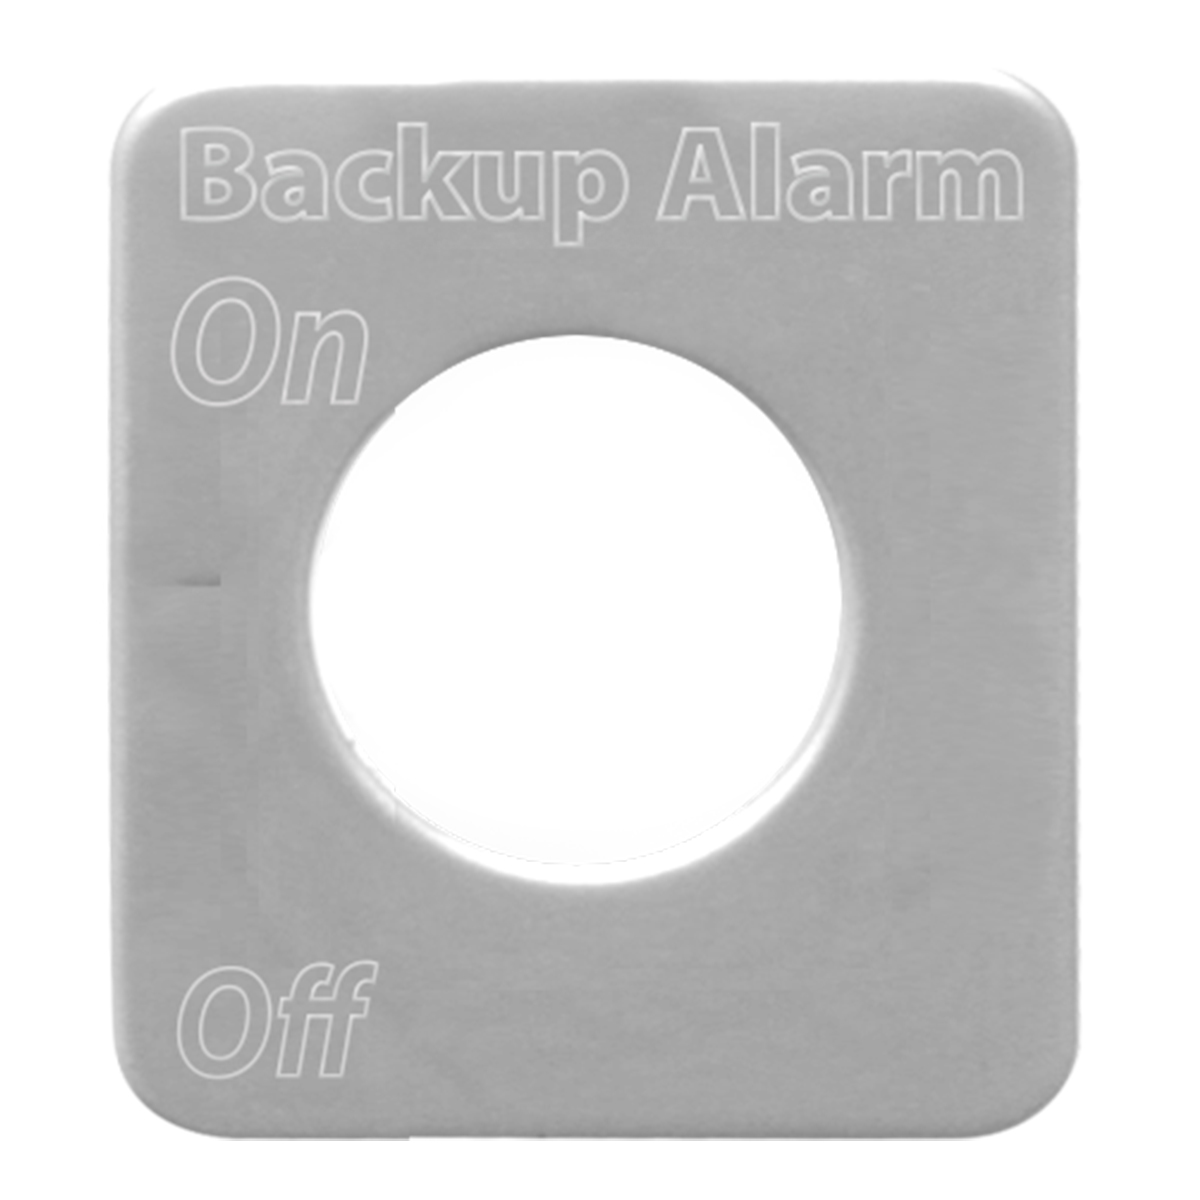 68600 Stainless Steel Backup Alarm Switch Plate for KW